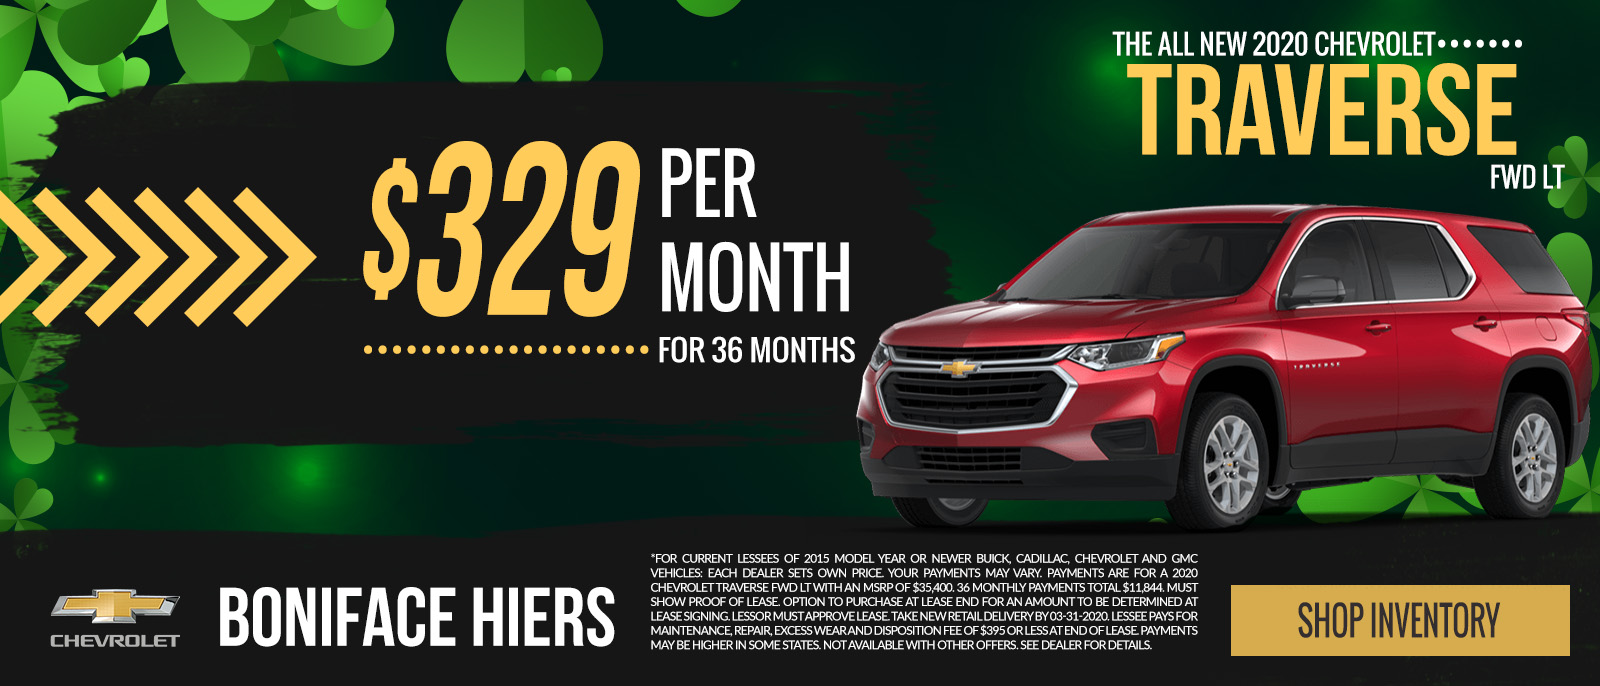 2020 Chevy Traverse FWD LT.  Lease for  $329 per month